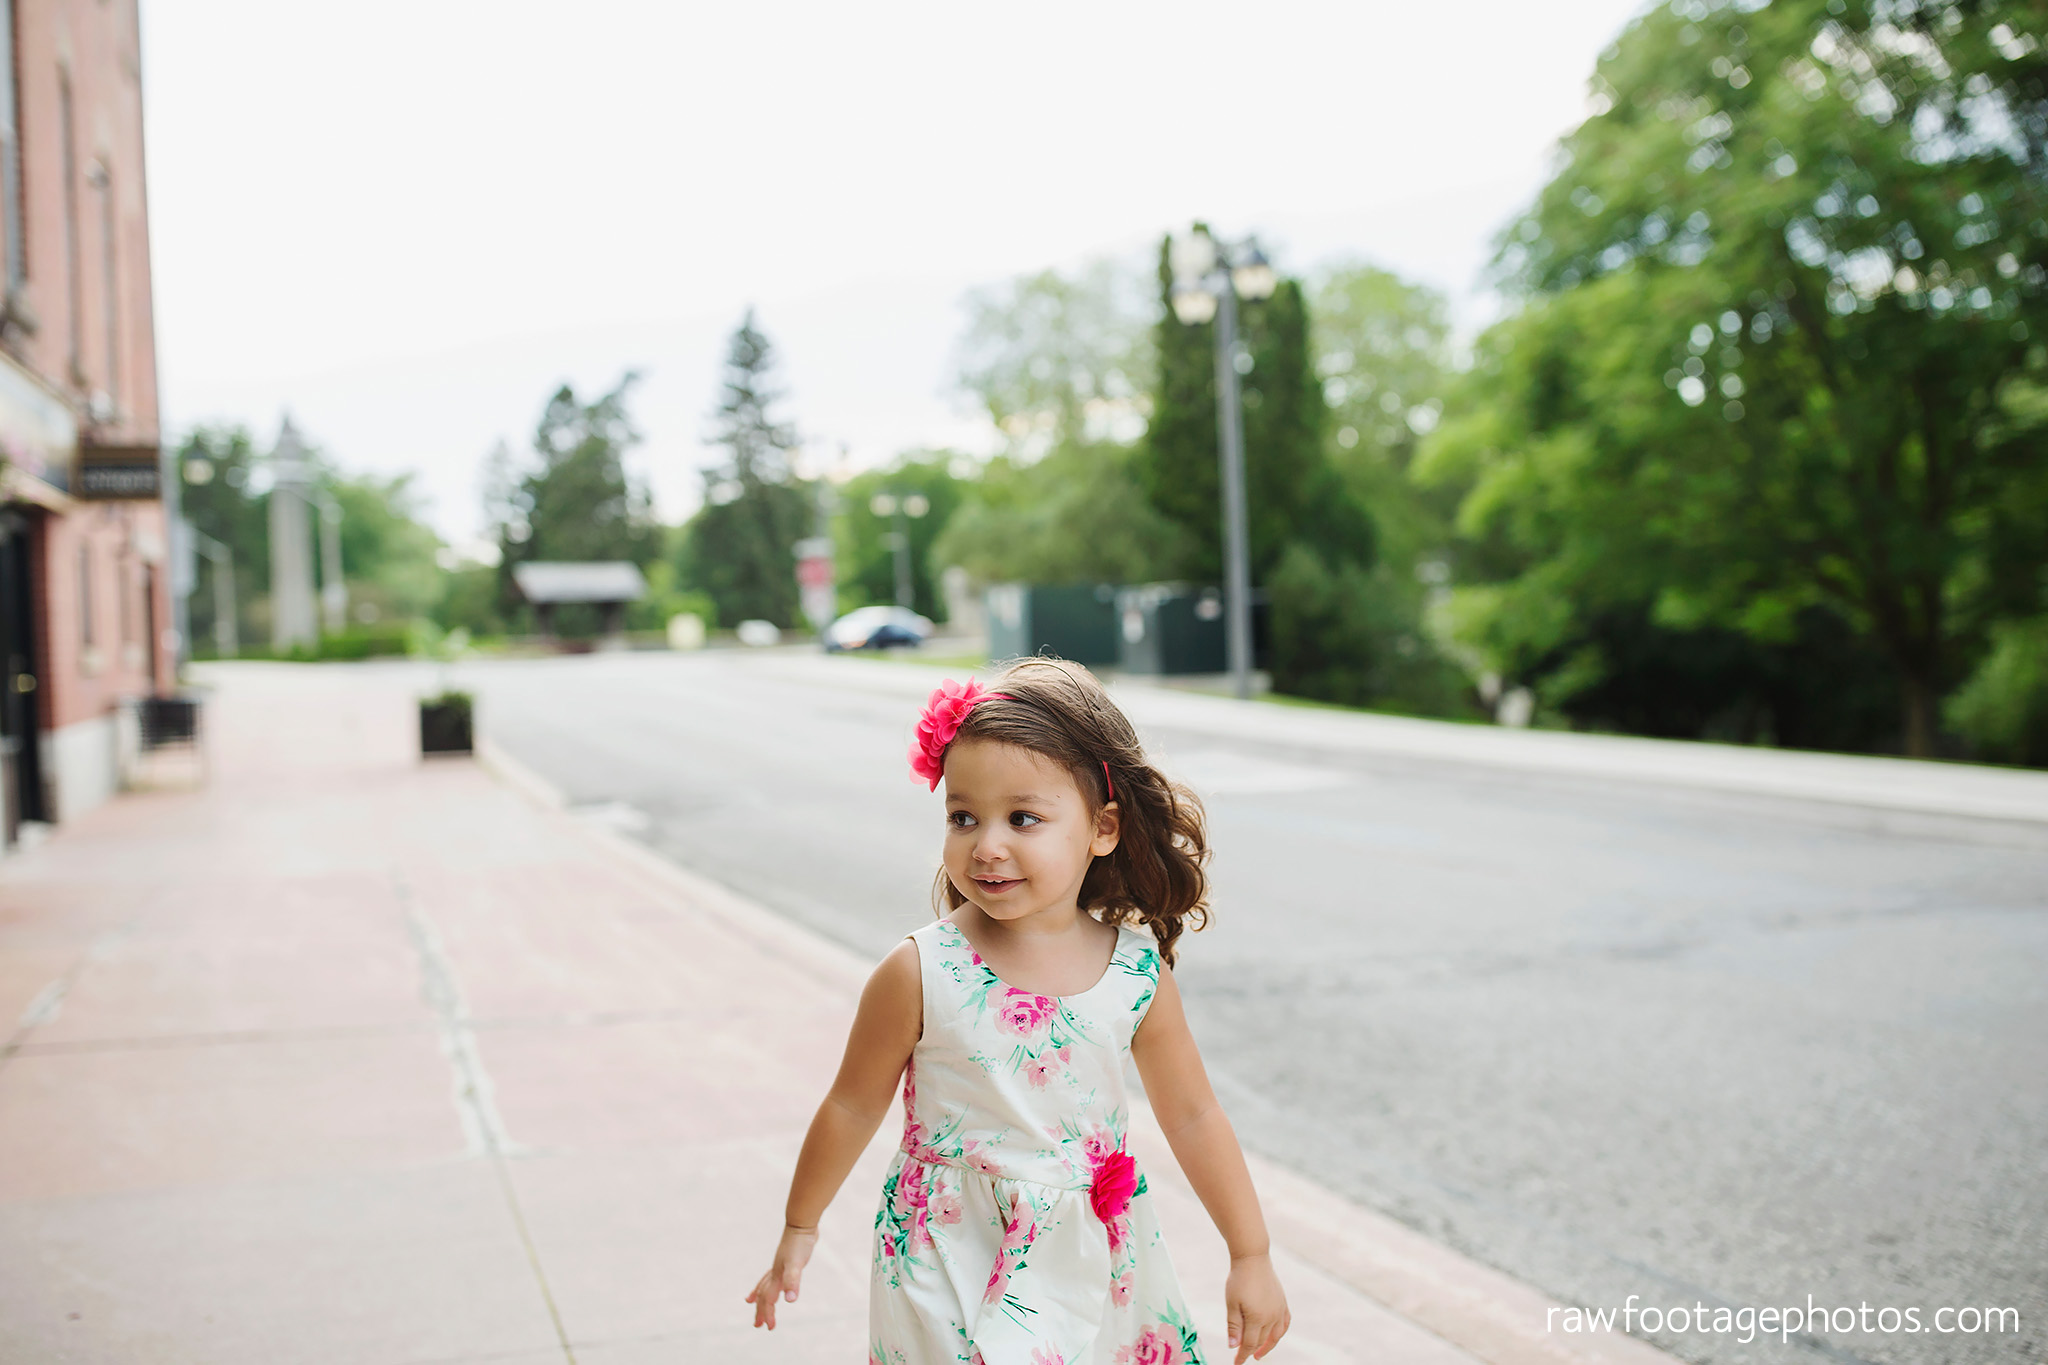 london_ontario_family_photographer-stratford_ontario_photographer-raw_footage_photography-lifestyle_photography-candid-golden_hour029.jpg